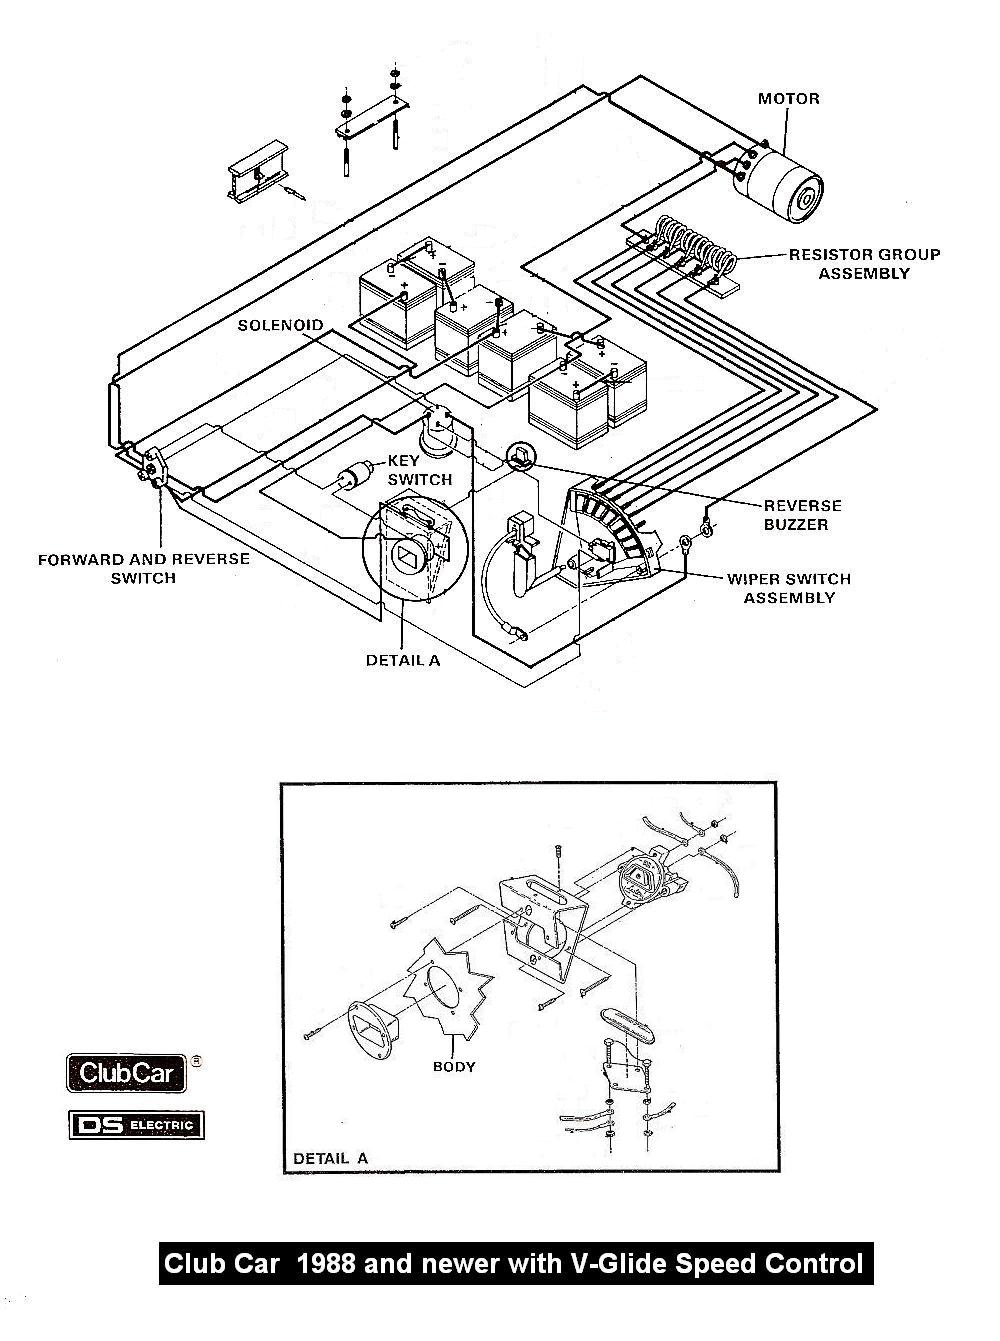 Cushman Eagle Wiring Diagram further Bad Boy Buggies 48v Wiring Diagram in addition Cushman 24 Volt Wiring Diagram furthermore 502ms Club 48 Volt 3 10 Horsepower Diagram Switches besides Po. on 48 volt cushman wiring diagram